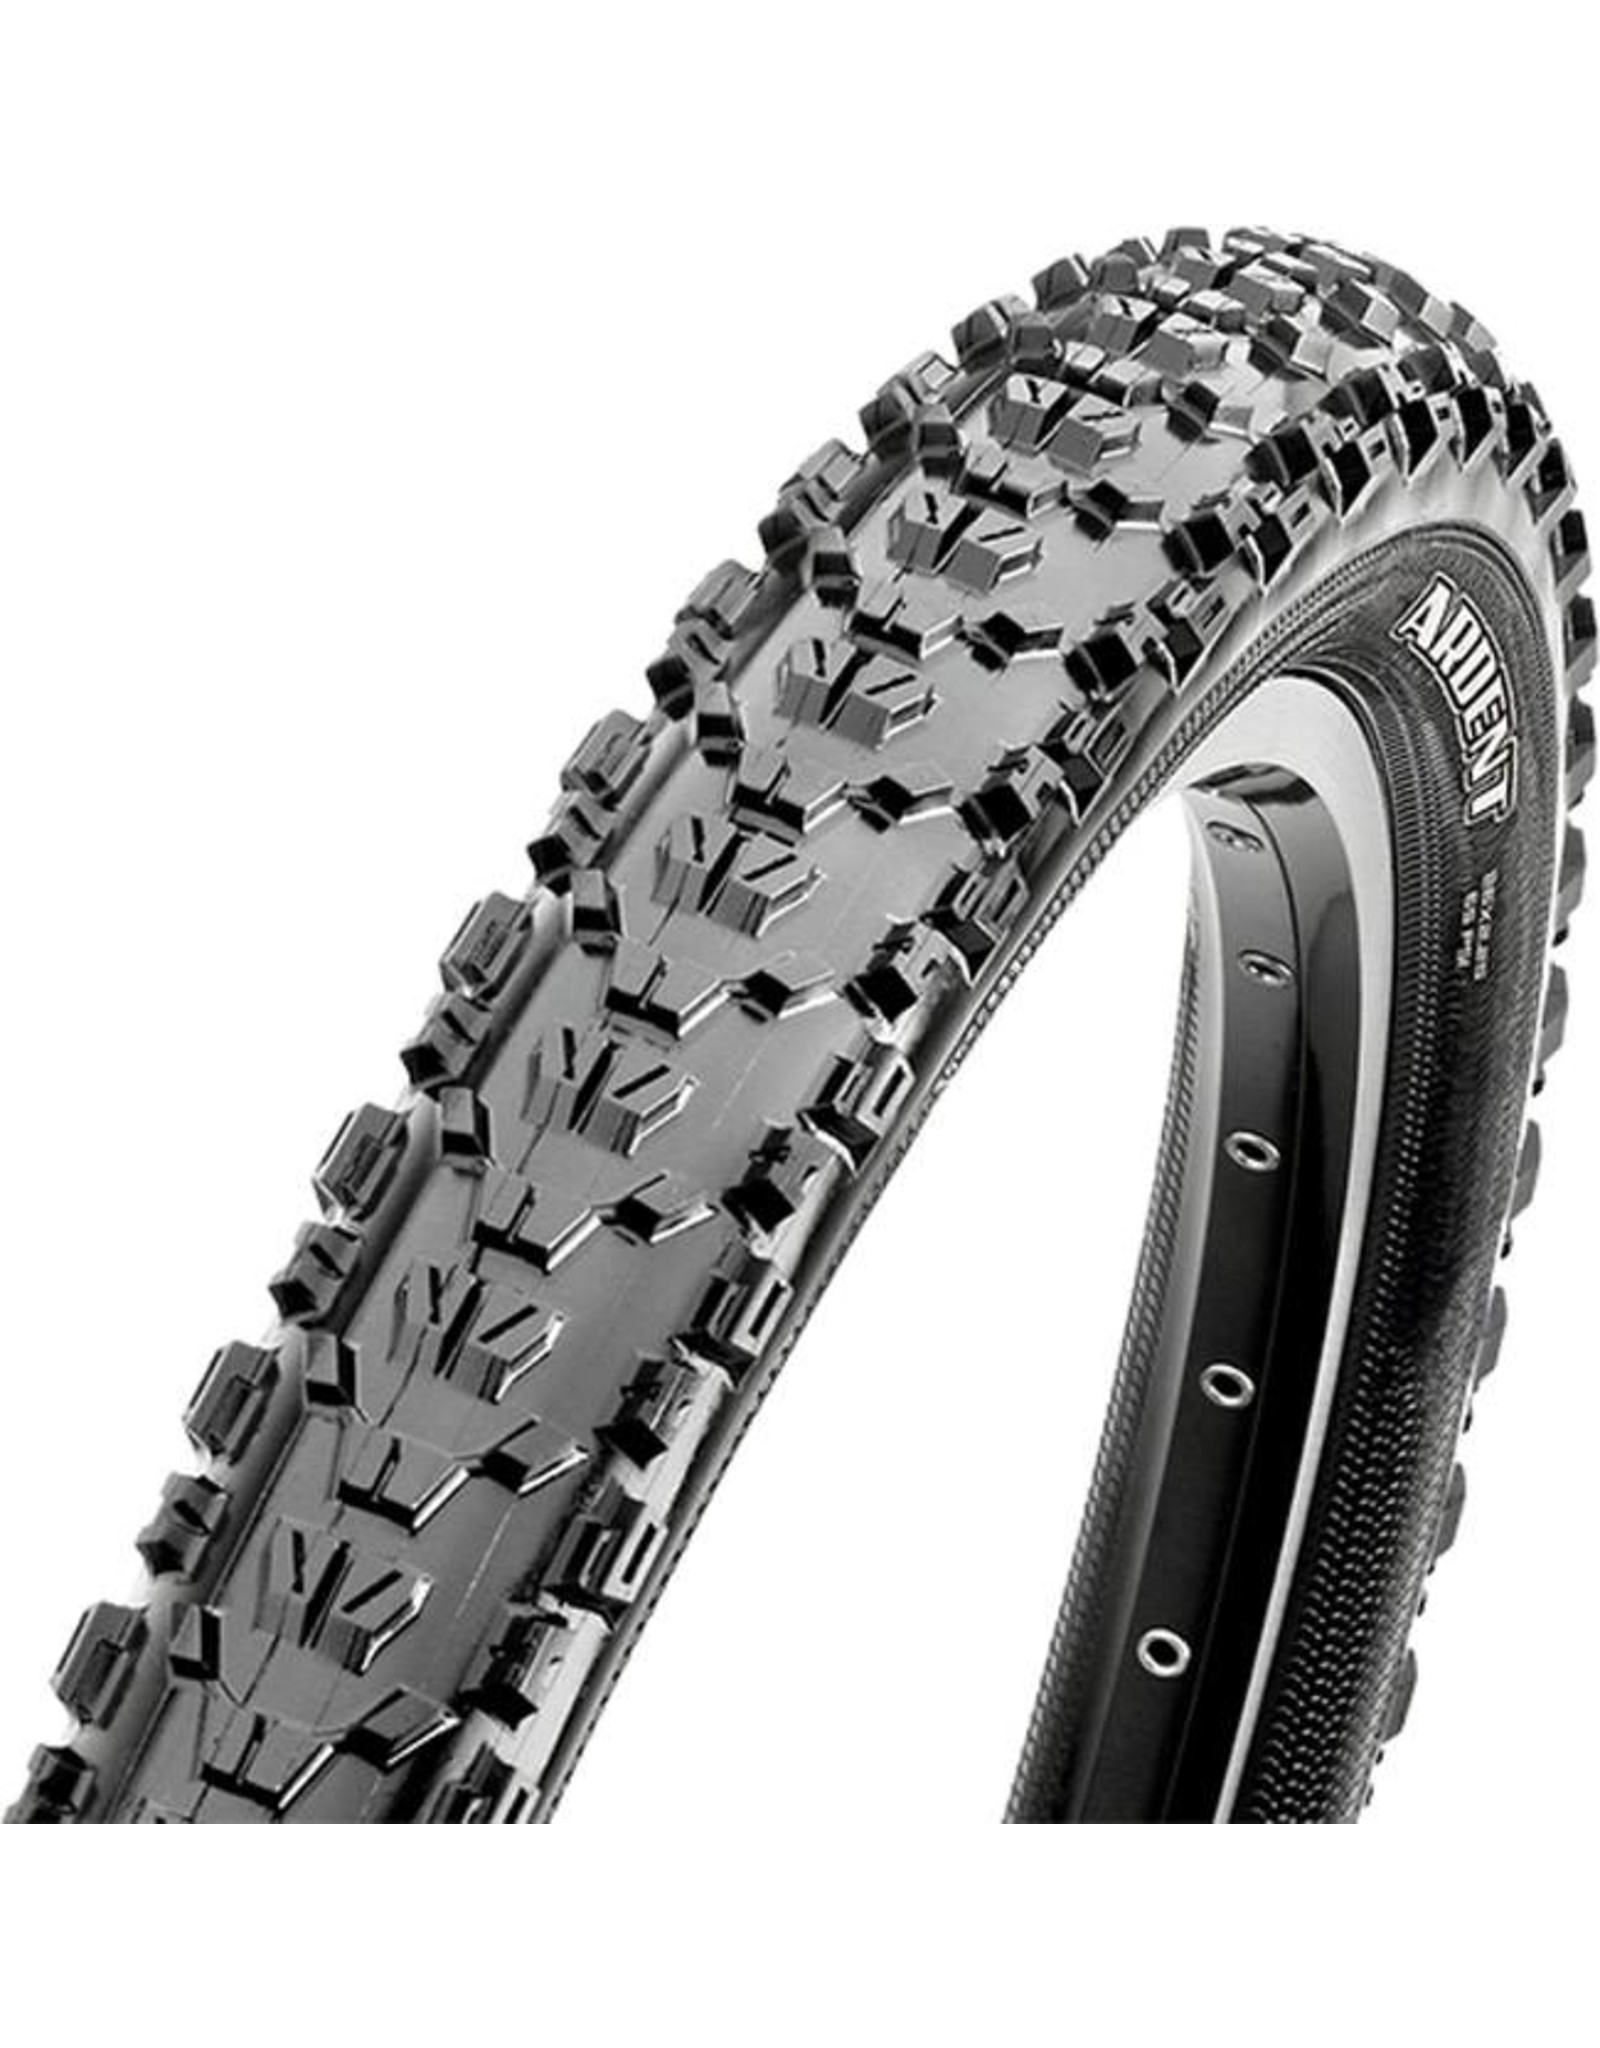 "Maxxis Maxxis Ardent Tire: 27.5 x 2.40"", Folding, 60tpi, Dual Compound, EXO, Tubeless Ready, Black"